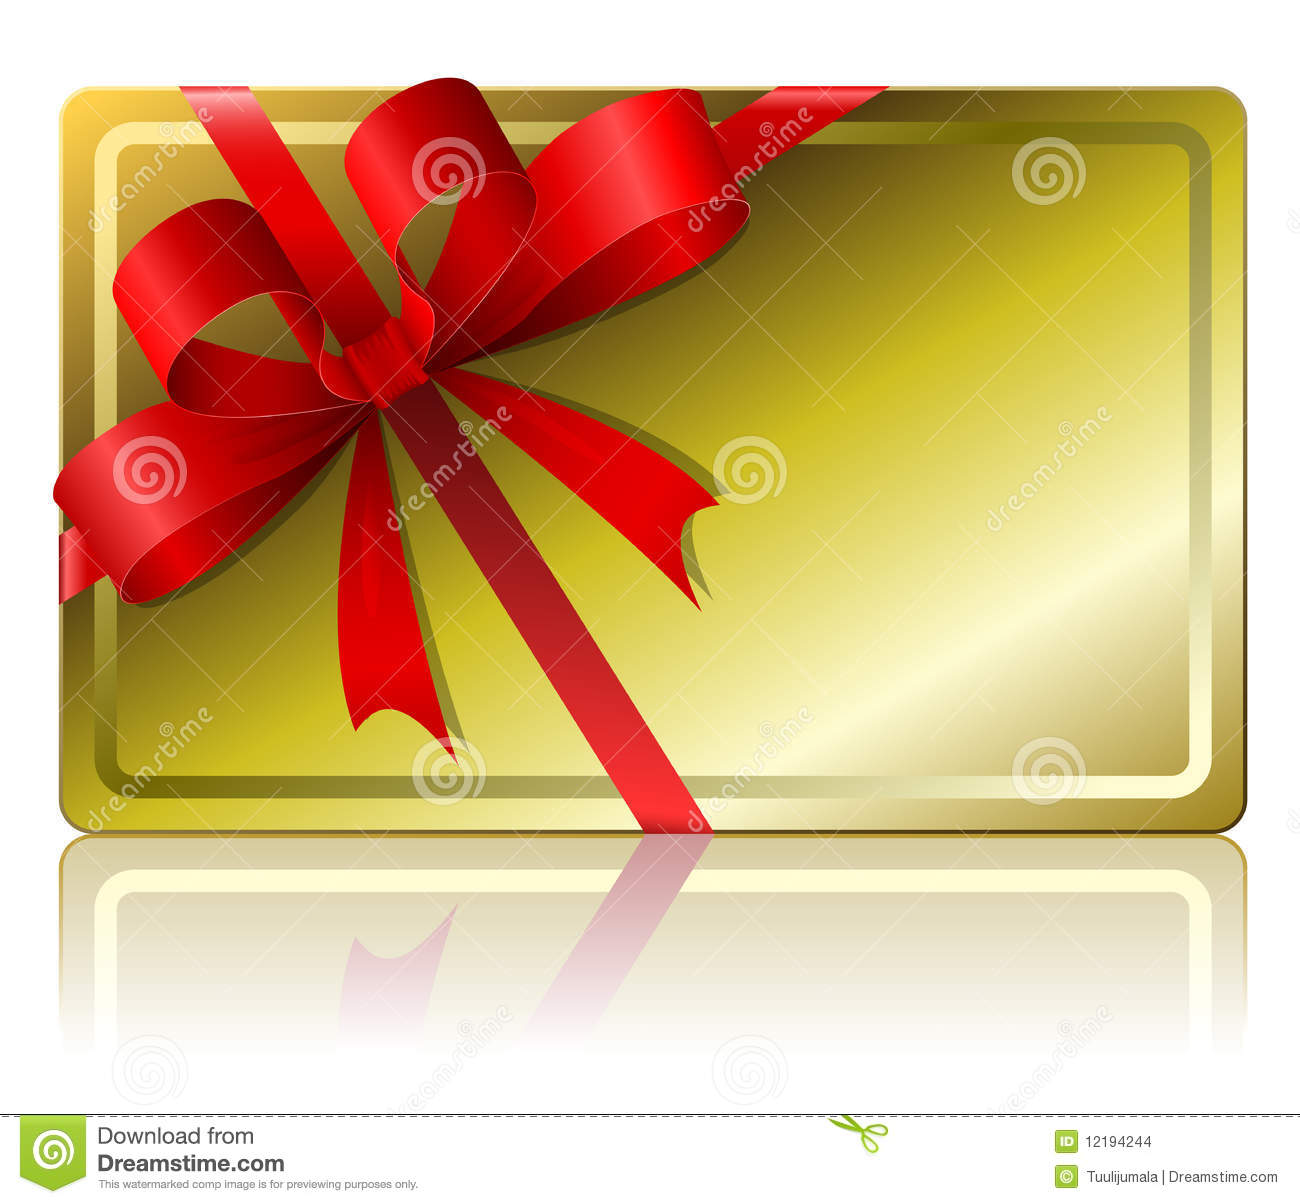 Blank Gift Card Stock Images - Image: 12194244